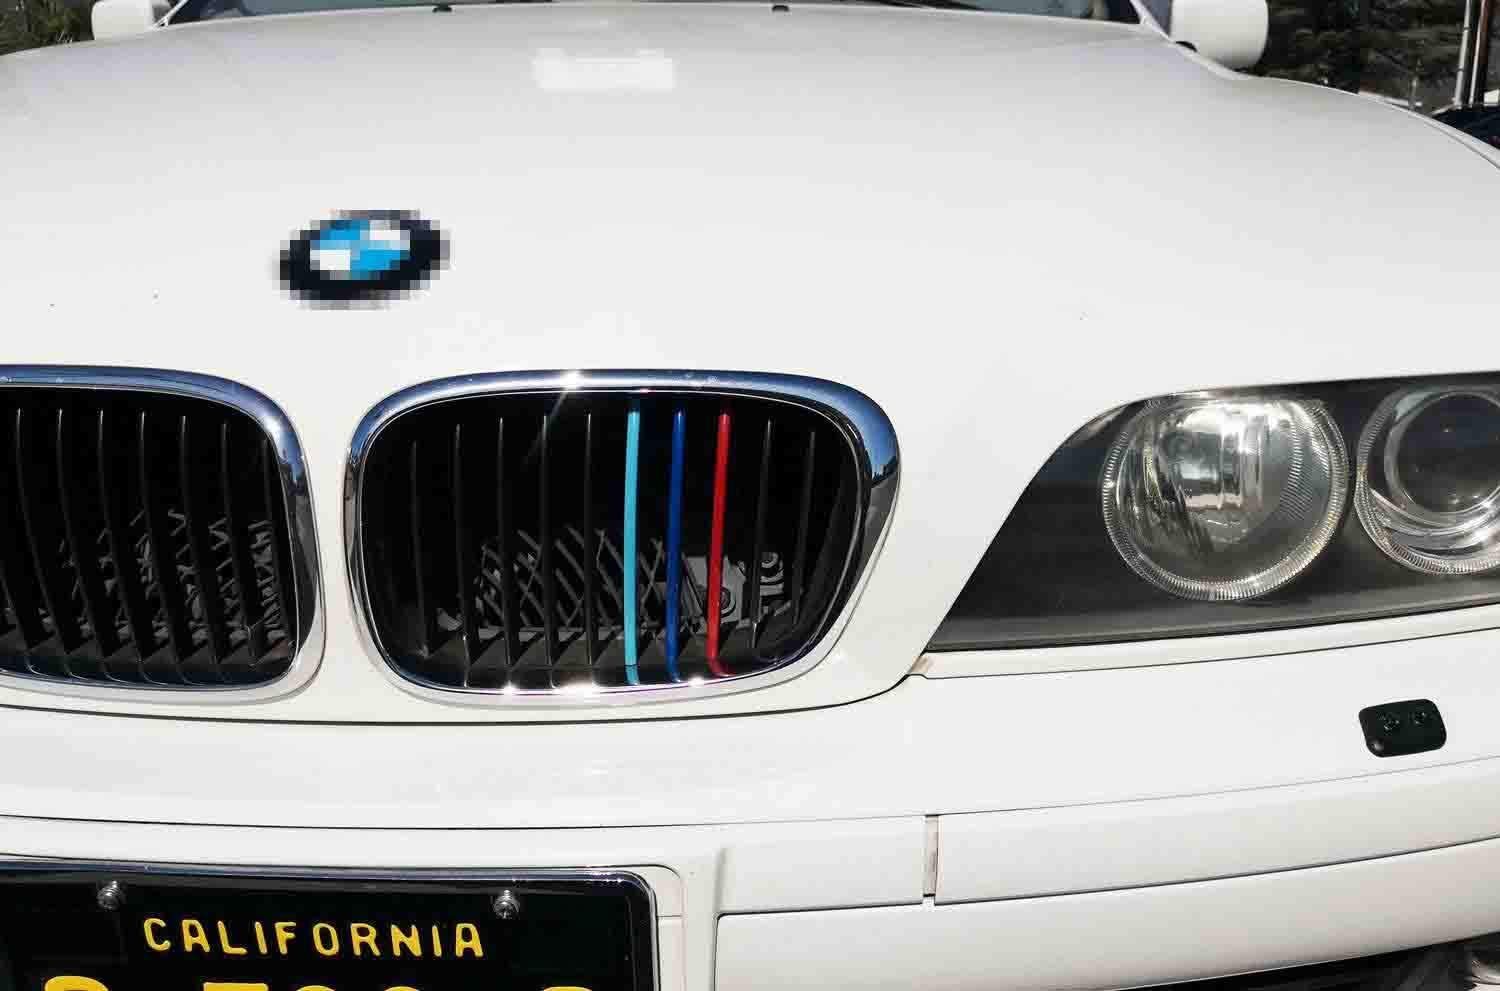 11 Beams iJDMTOY Exact Fit //////M-Colored Grille Insert Trims Compatible With 2004-2010 BMW E60 5 Series 525i 528i 530i 535i 540i 545i 550i M5 Front Center Kidney Grilles